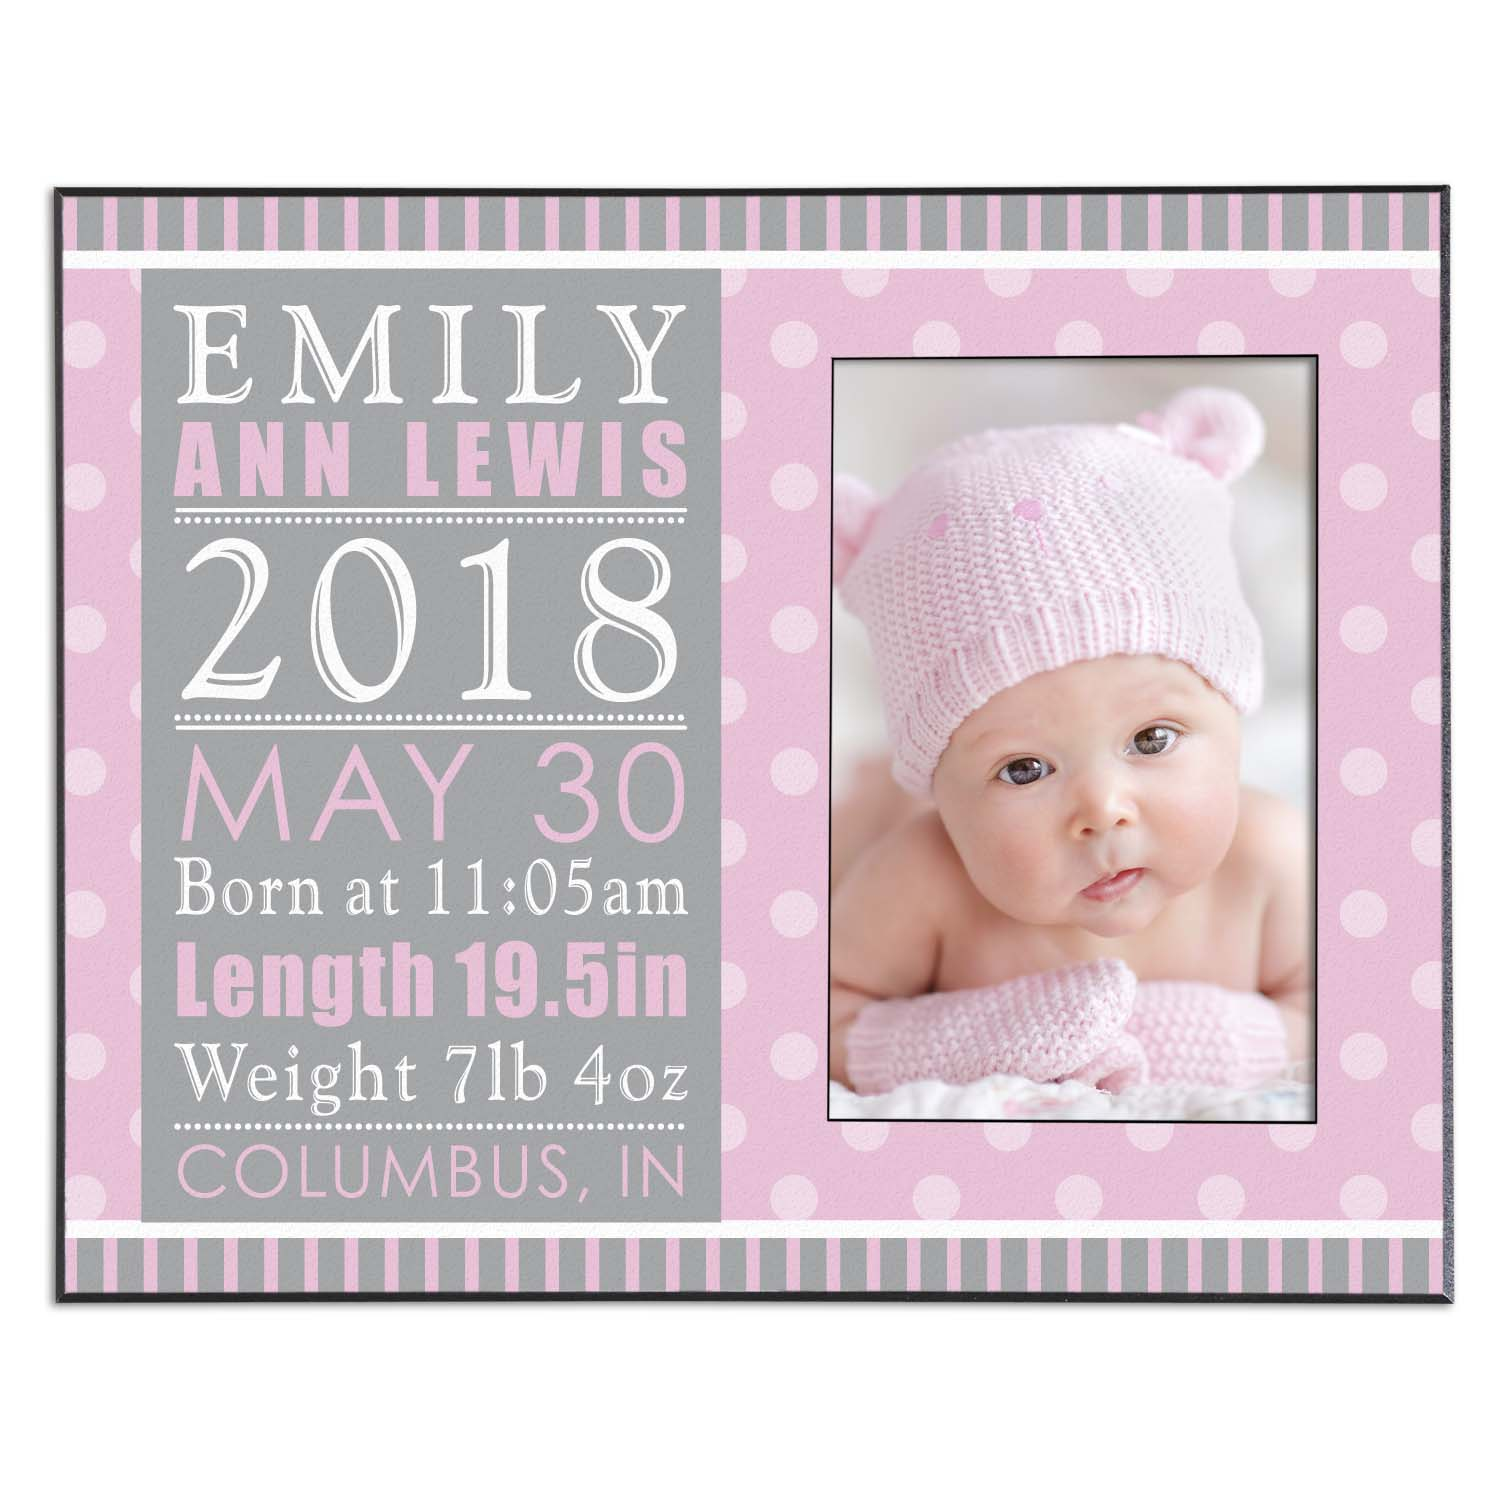 "Personalized Precious Details Baby Photo Frame 10"" x 8""-Available in Blue or Pink"